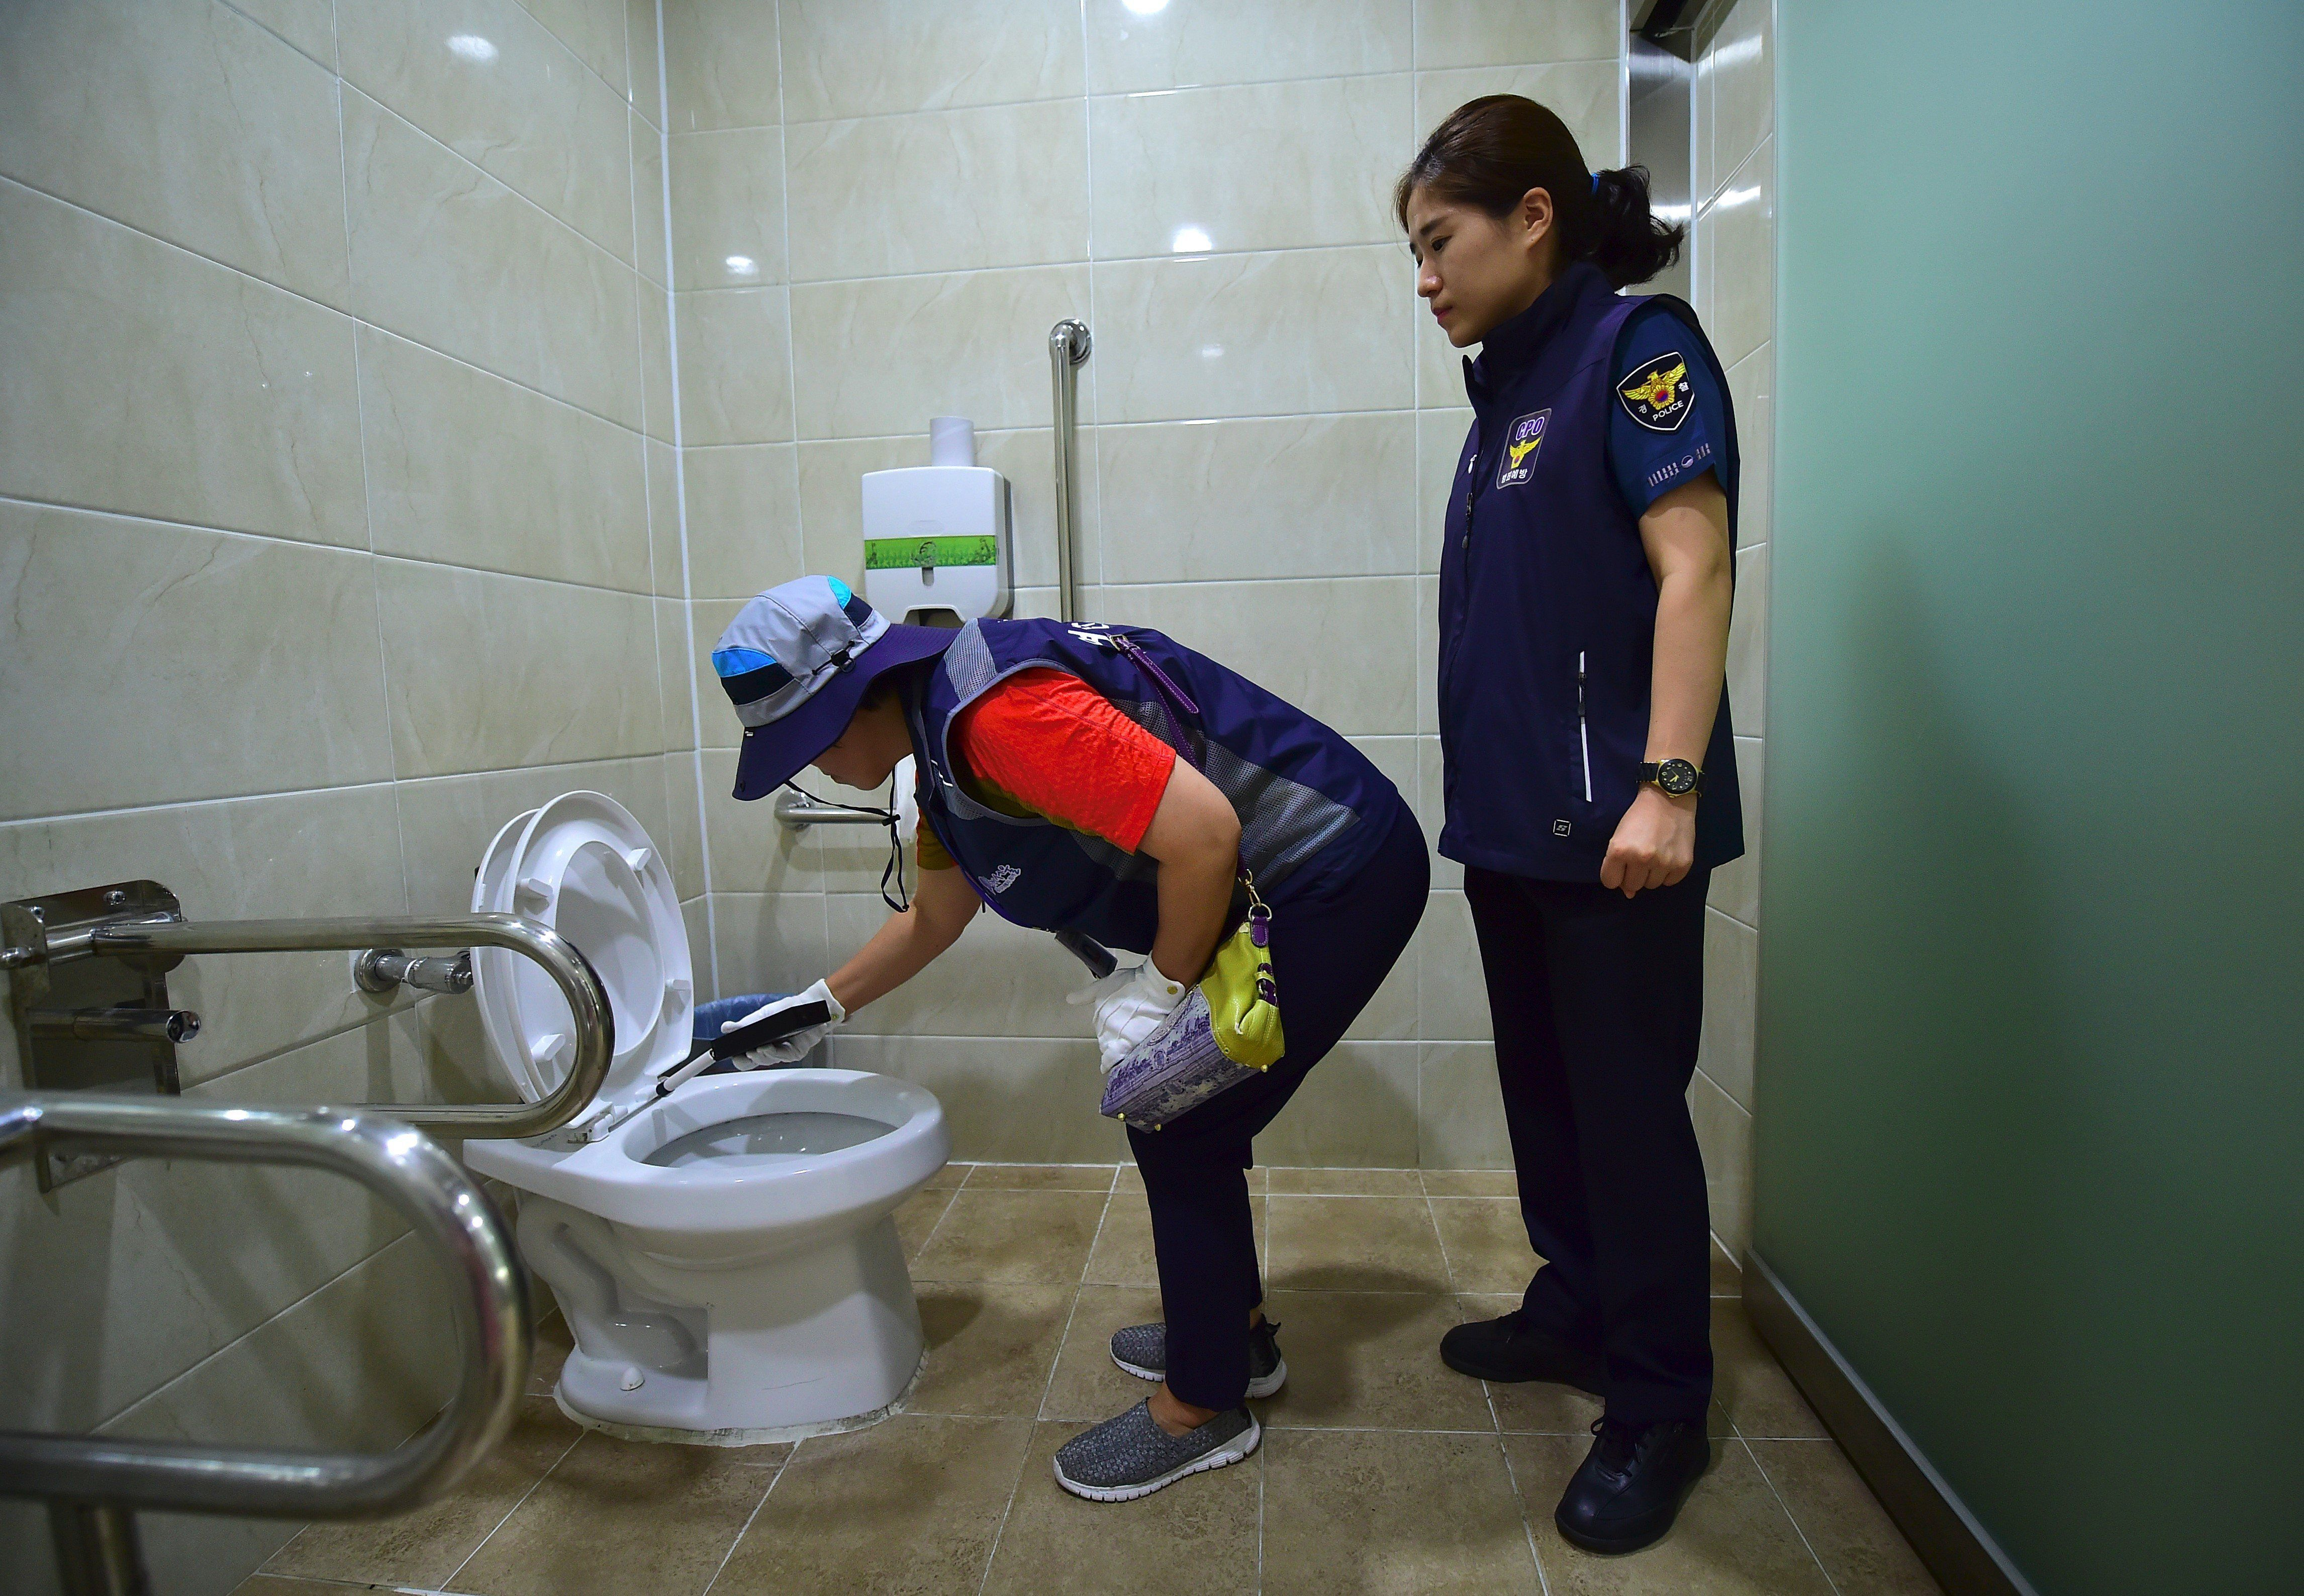 Seoul Public Toilets To Be Checked Daily For Hidden Cameras In Bid To Combat 'Spy Cam